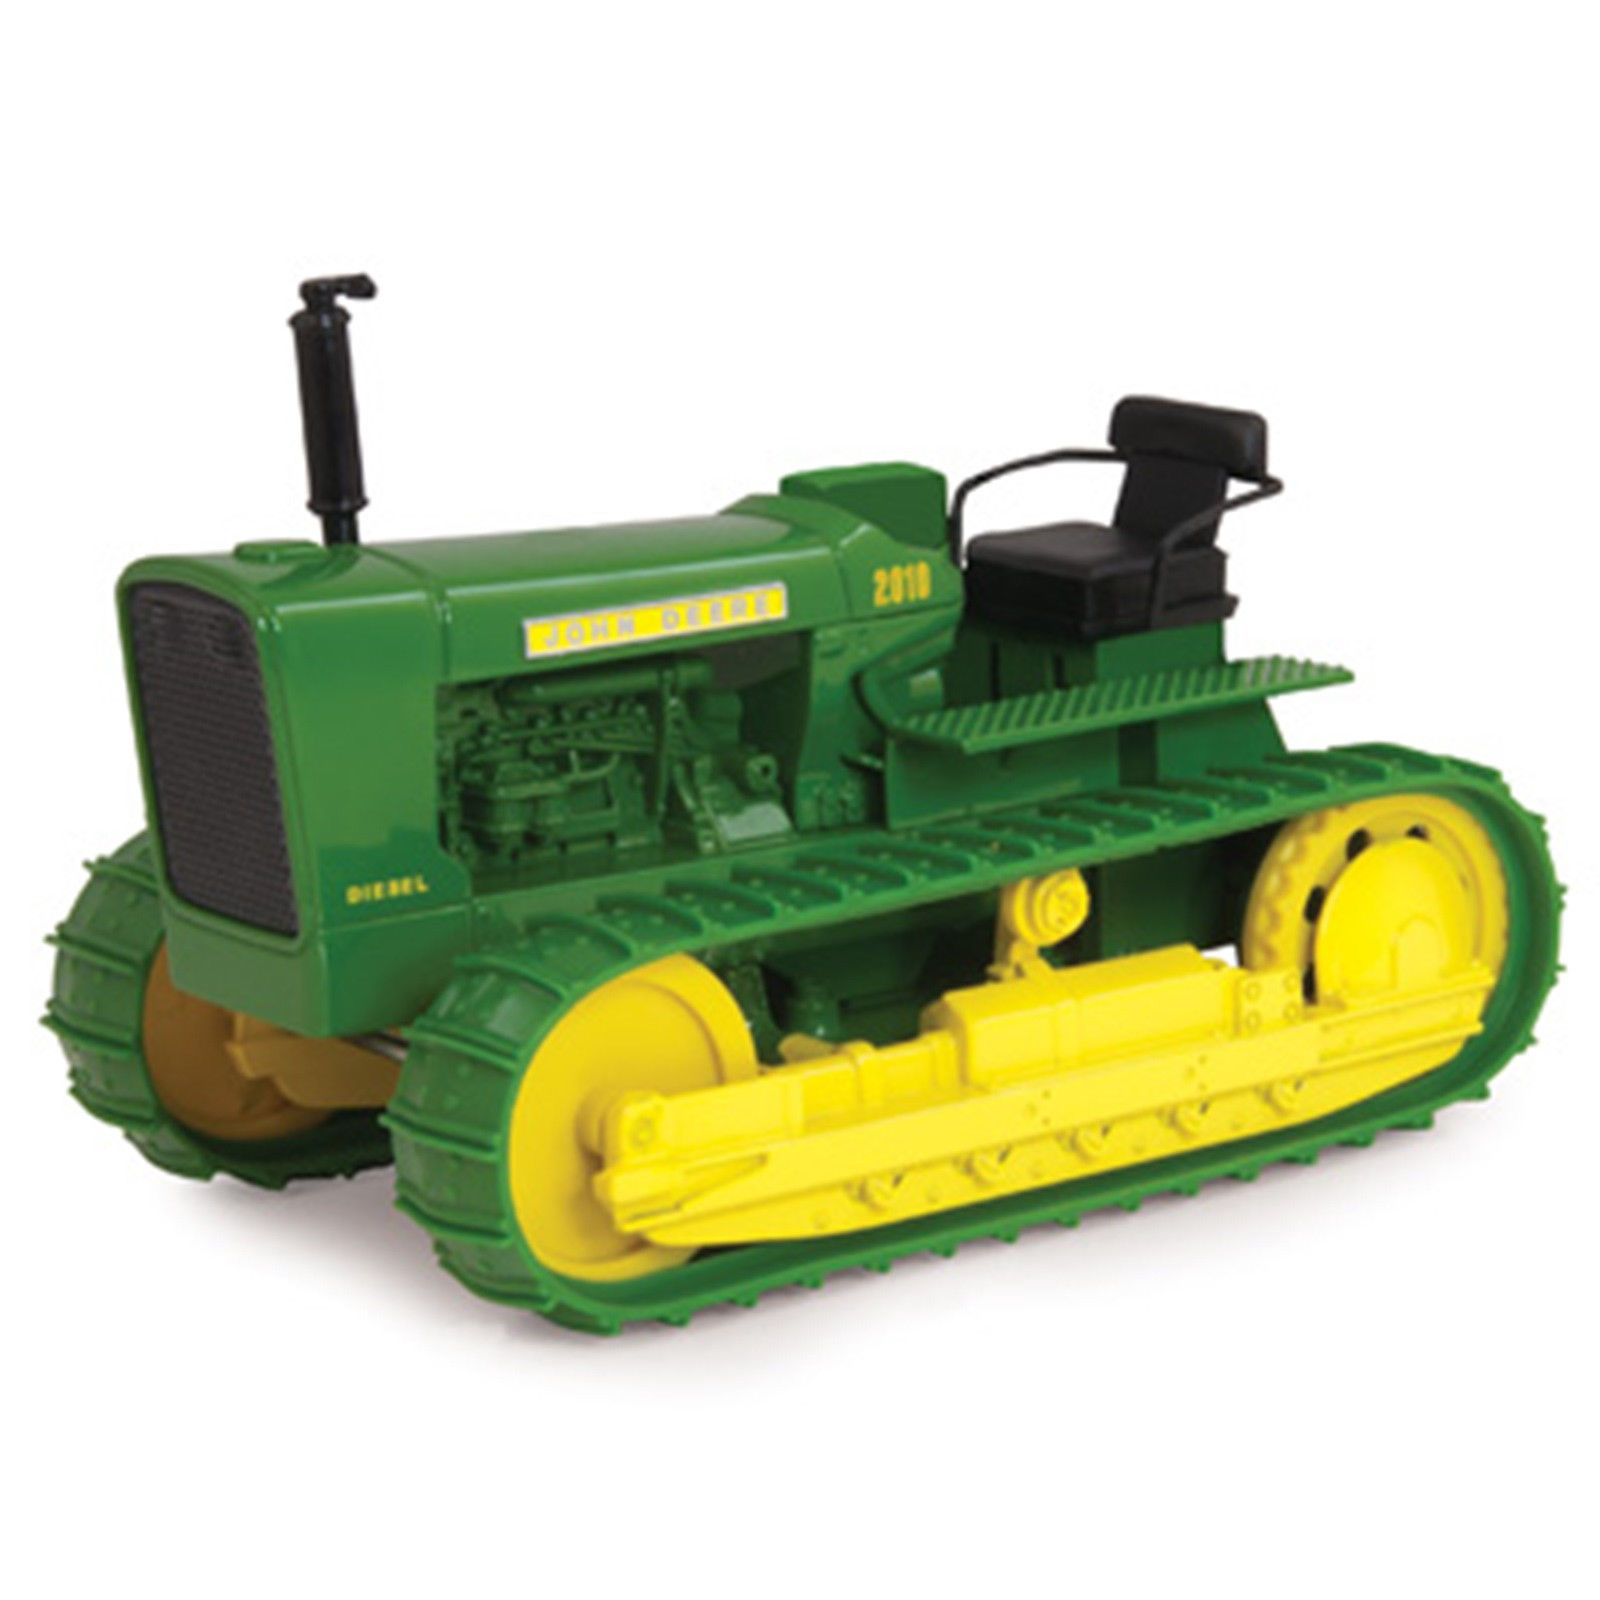 JOHN DEERE 8285R TRACTOR WITH A 2700 RIPPER 1:64 SCALE ...